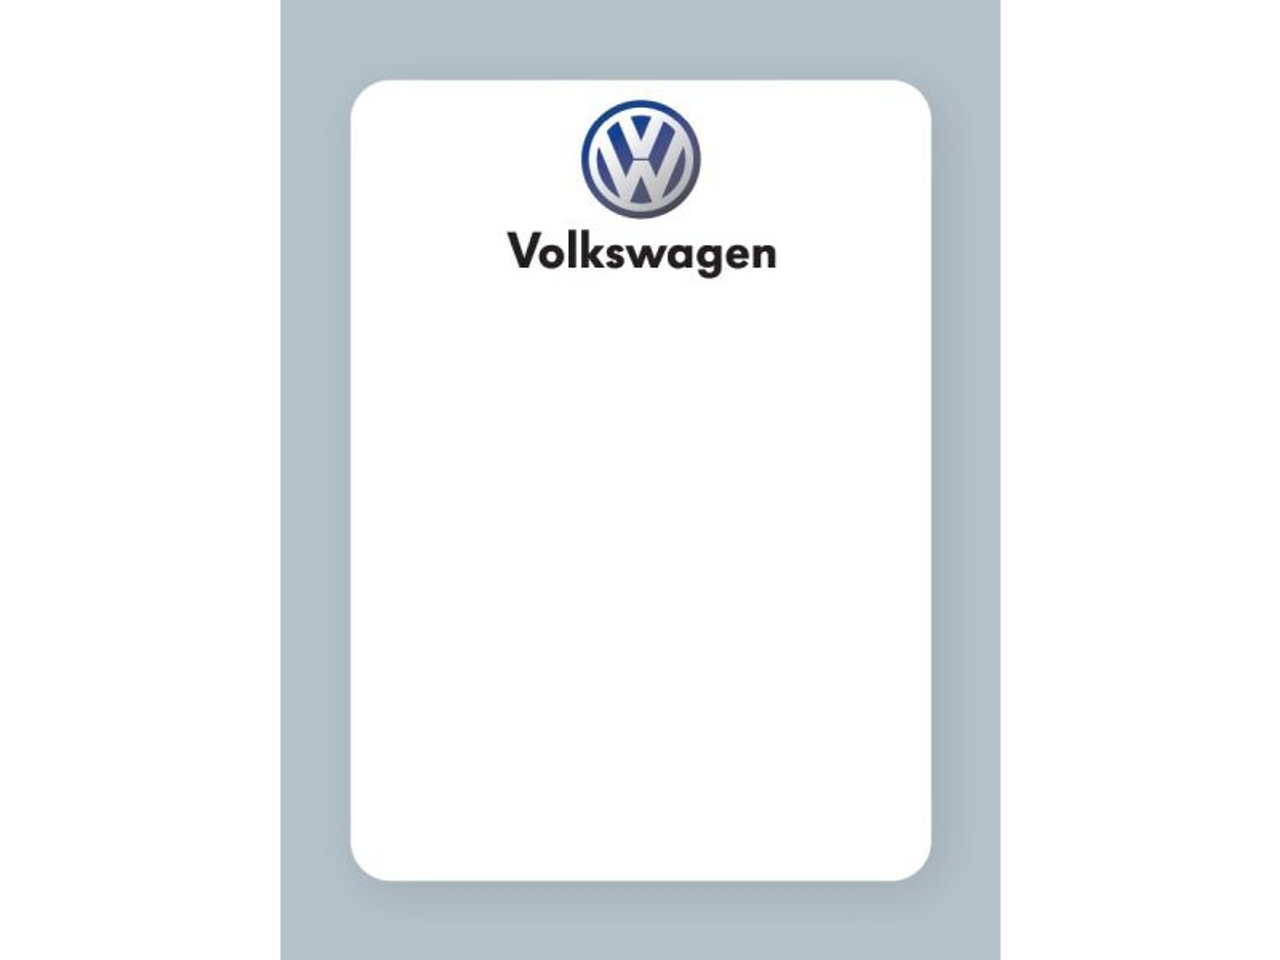 Perfect for Volkswagen dealers.